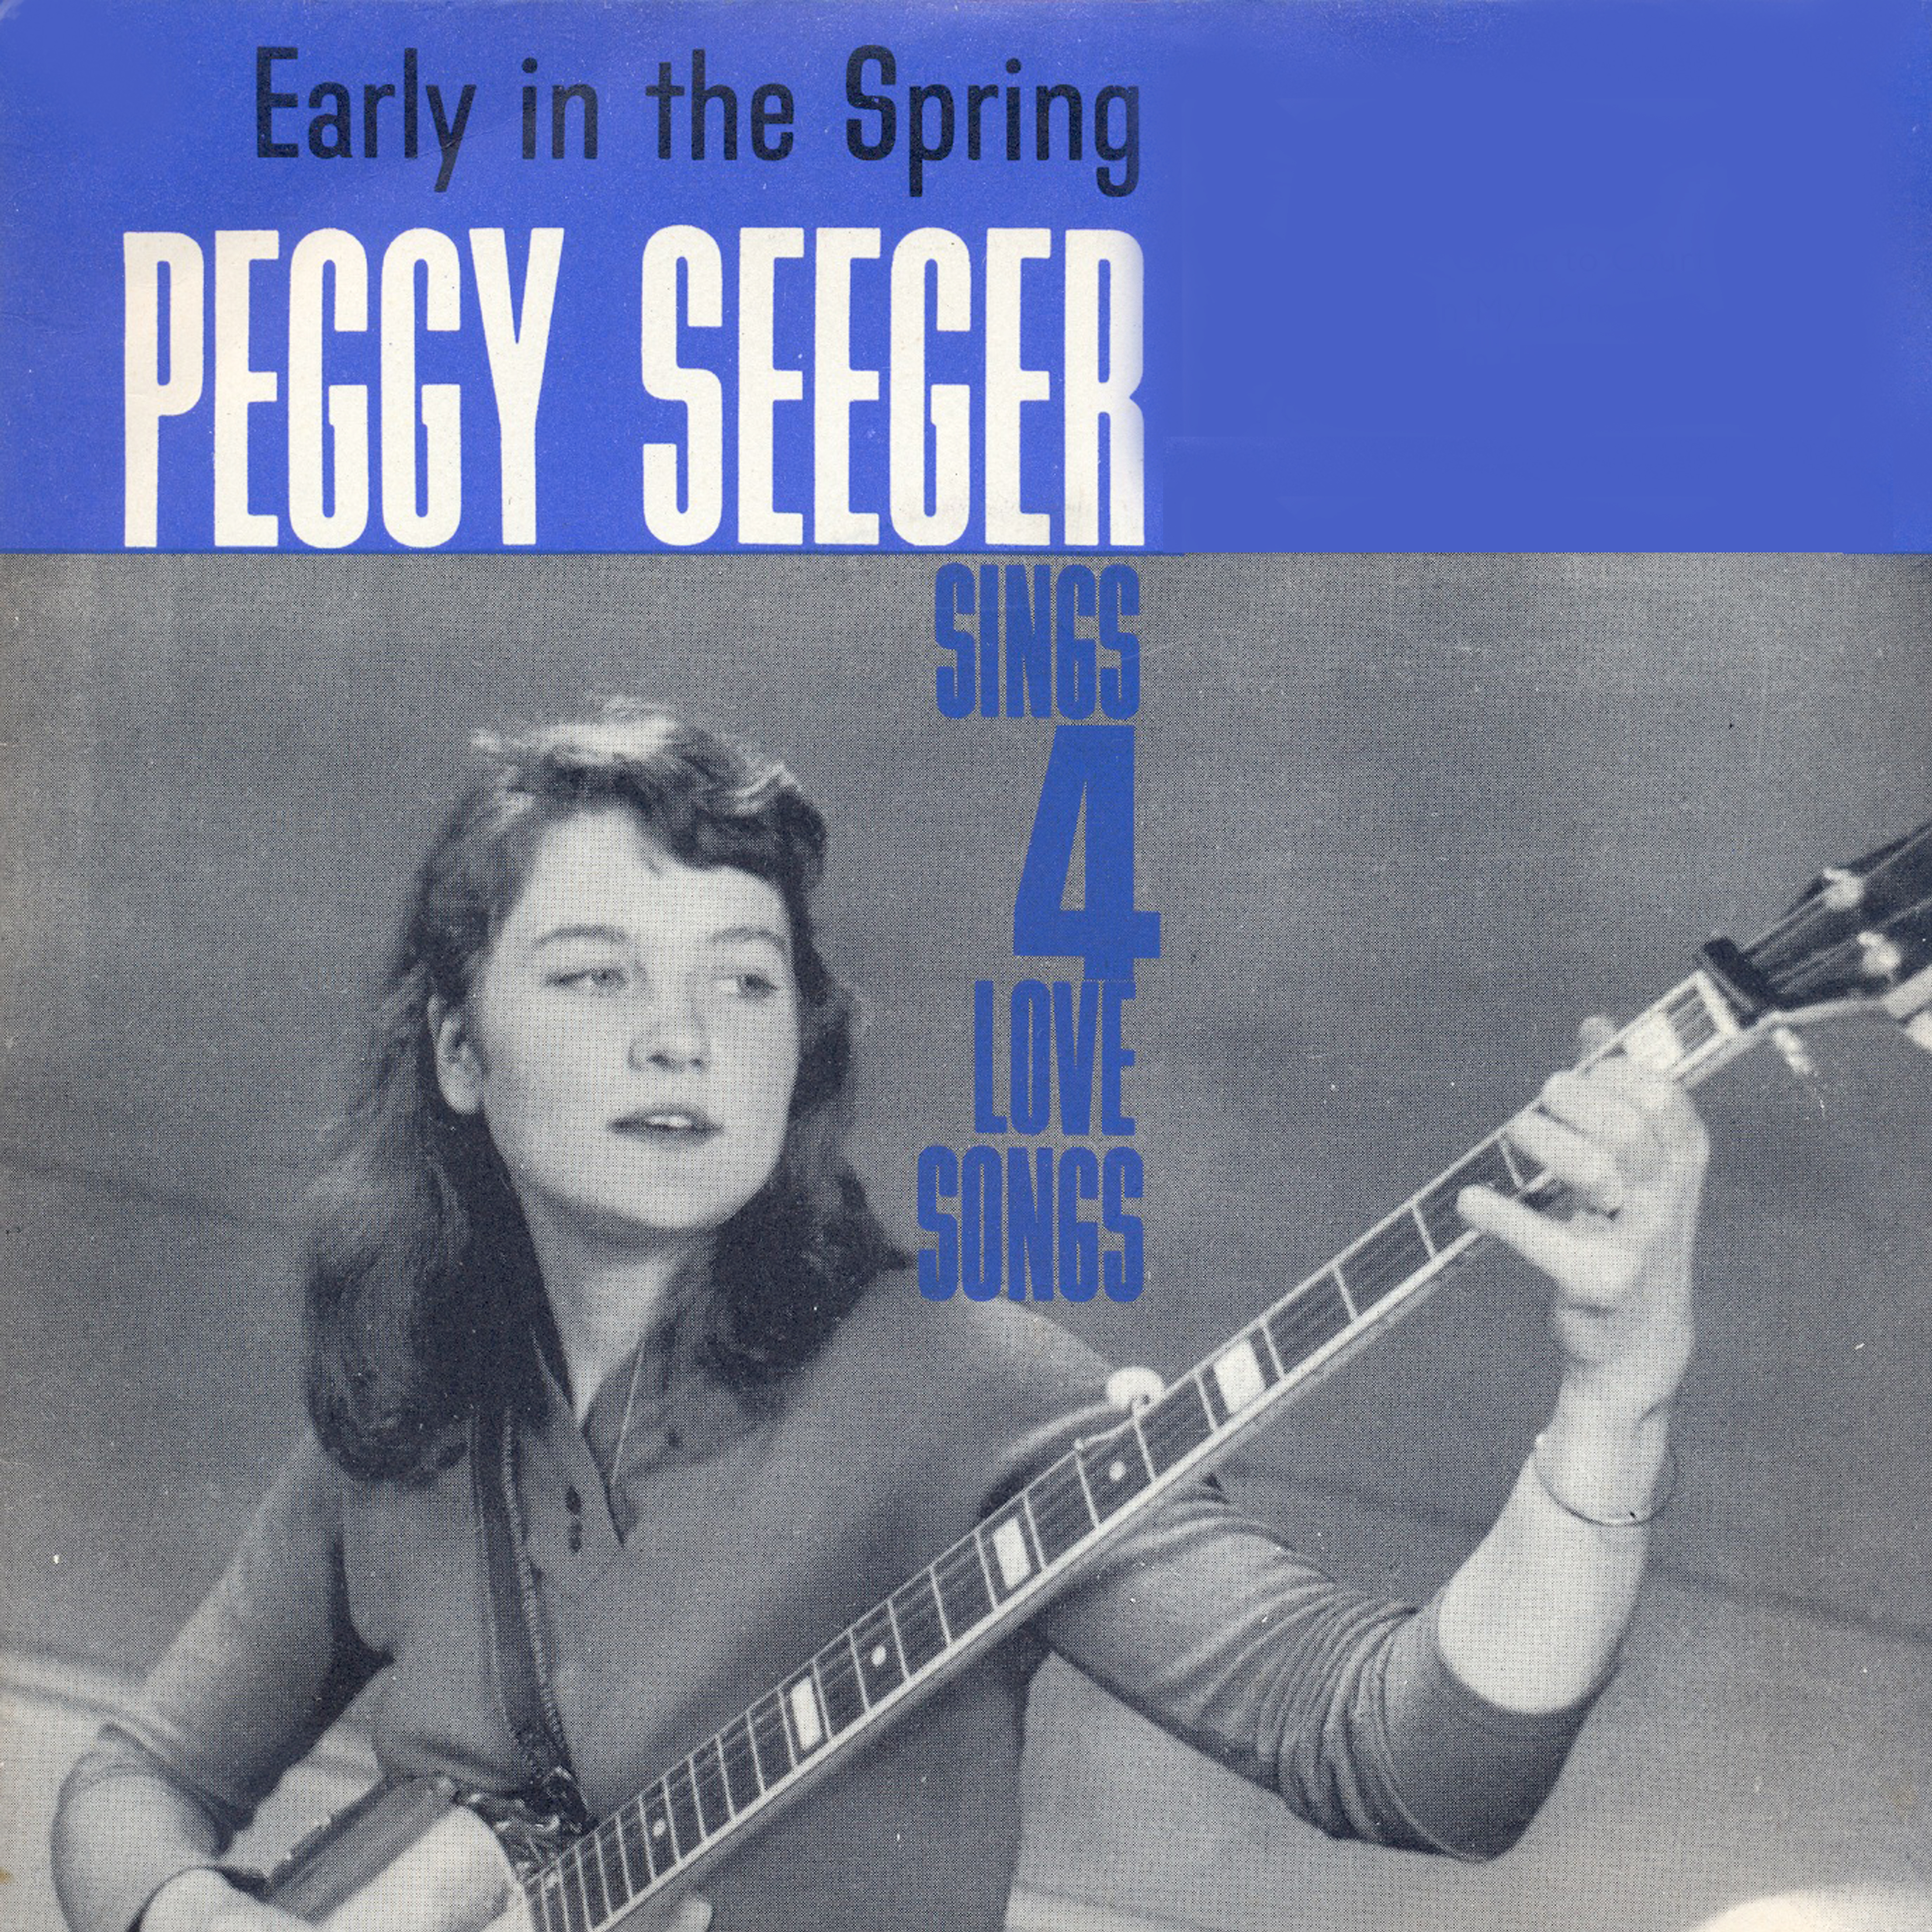 Early in the Spring - Peggy Seeger Sings Four Love Songs